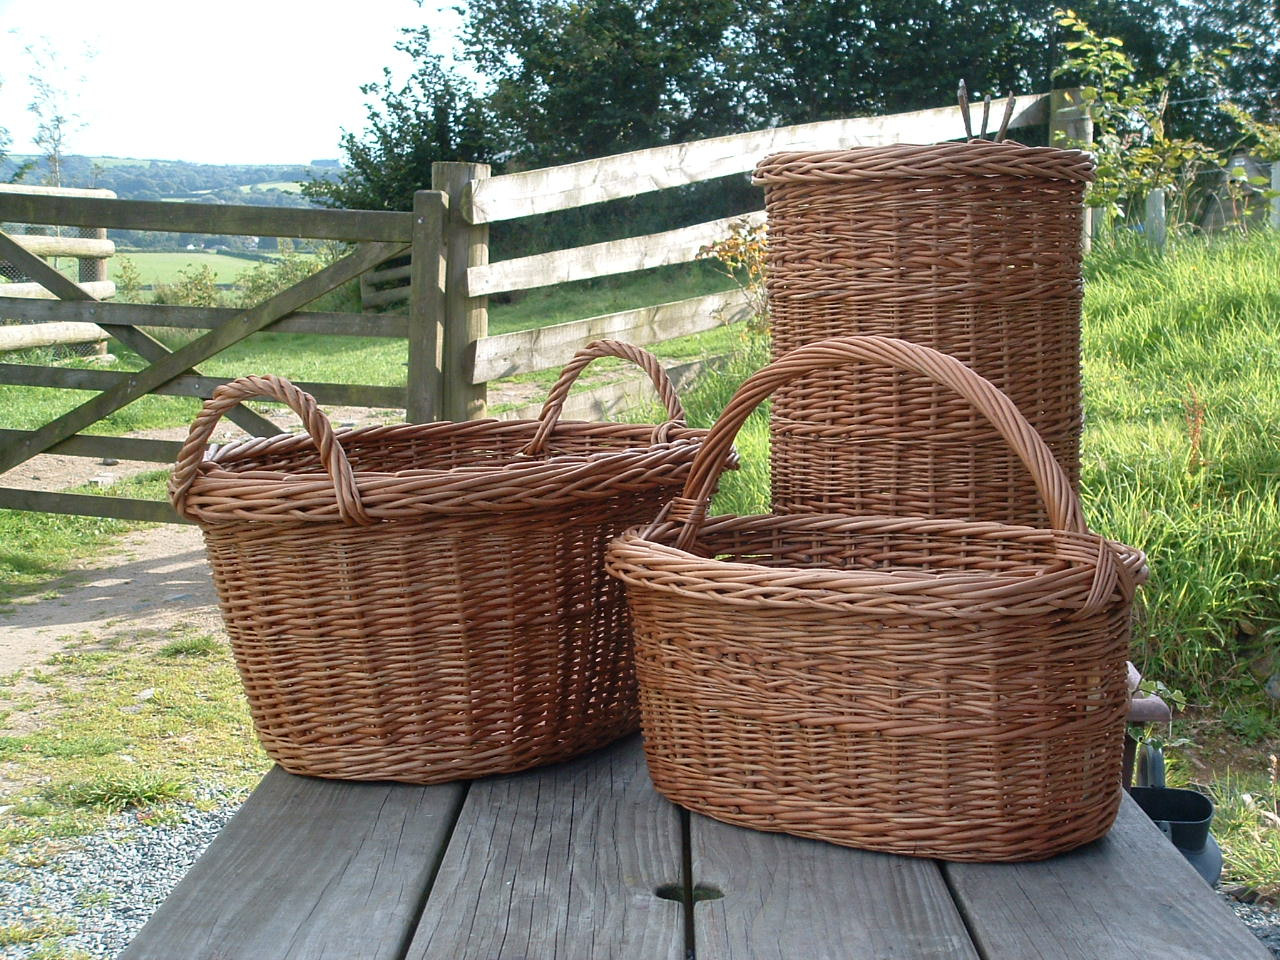 Laundry Basket, Umbrella Basket, Oval Basket